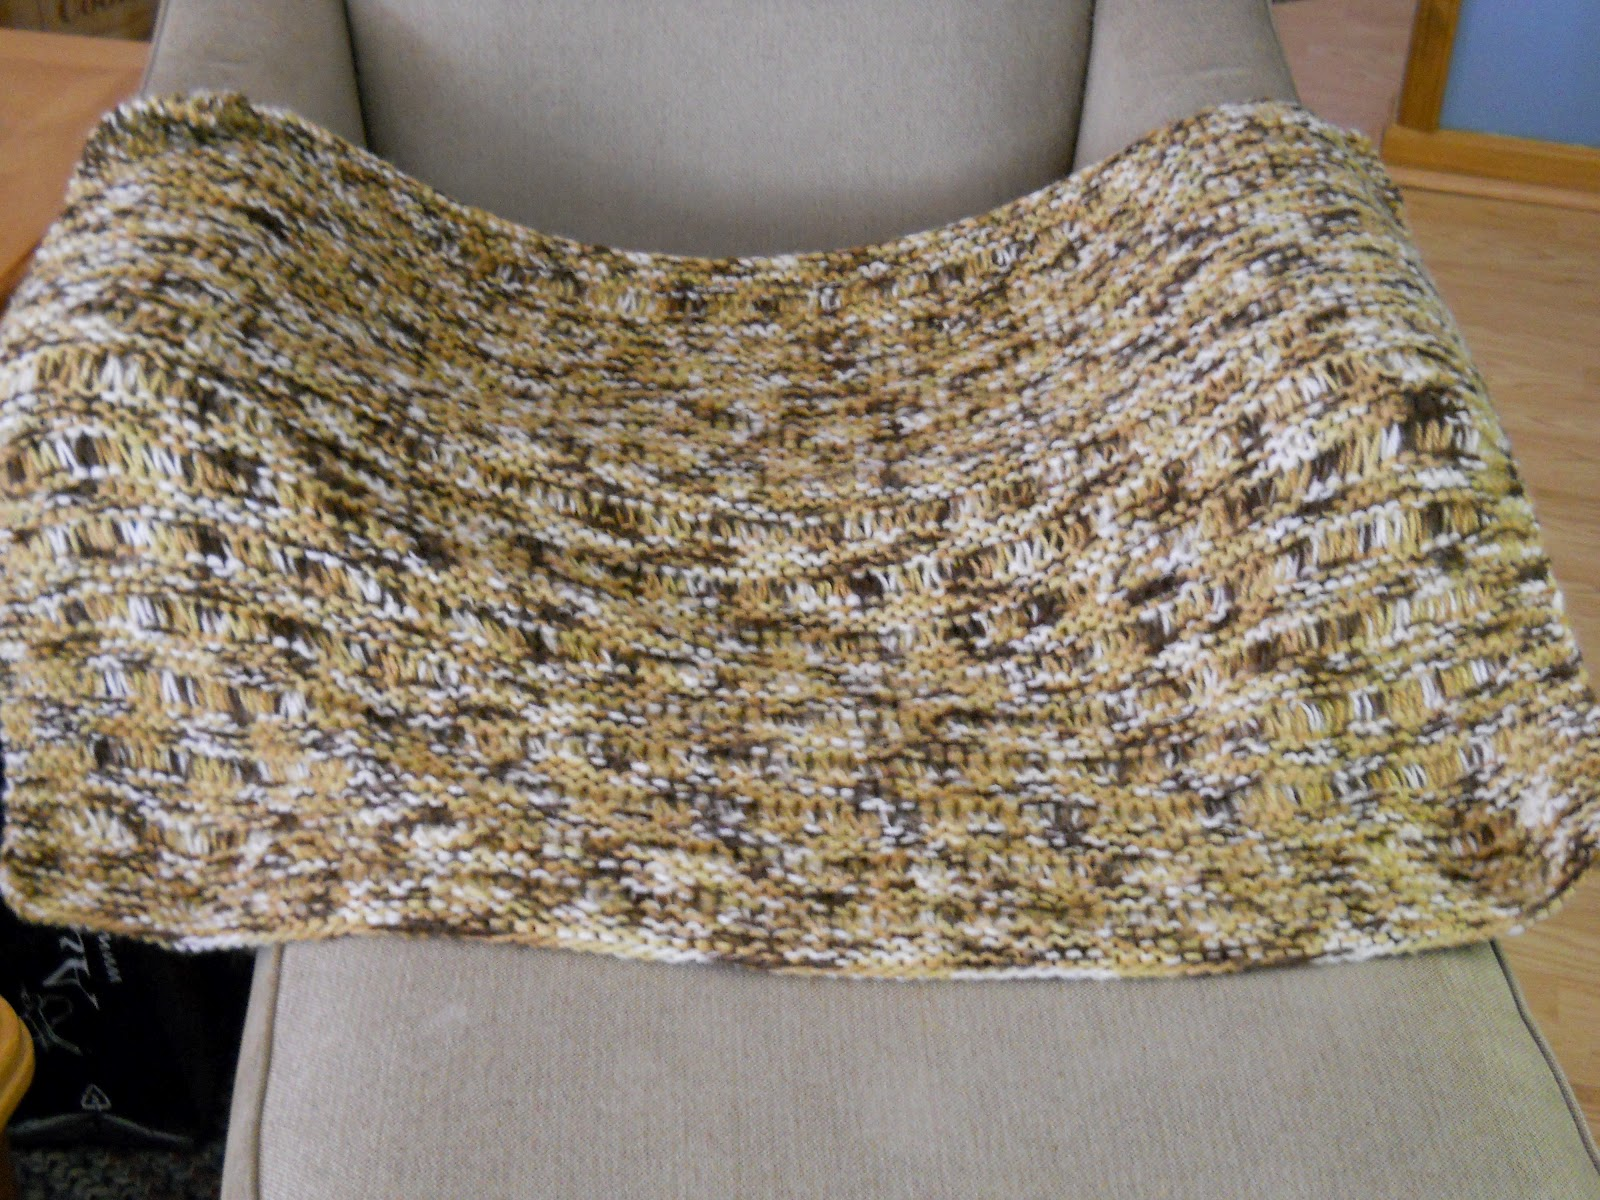 Knitting with Schnapps: Introducing the Komfort Kover!